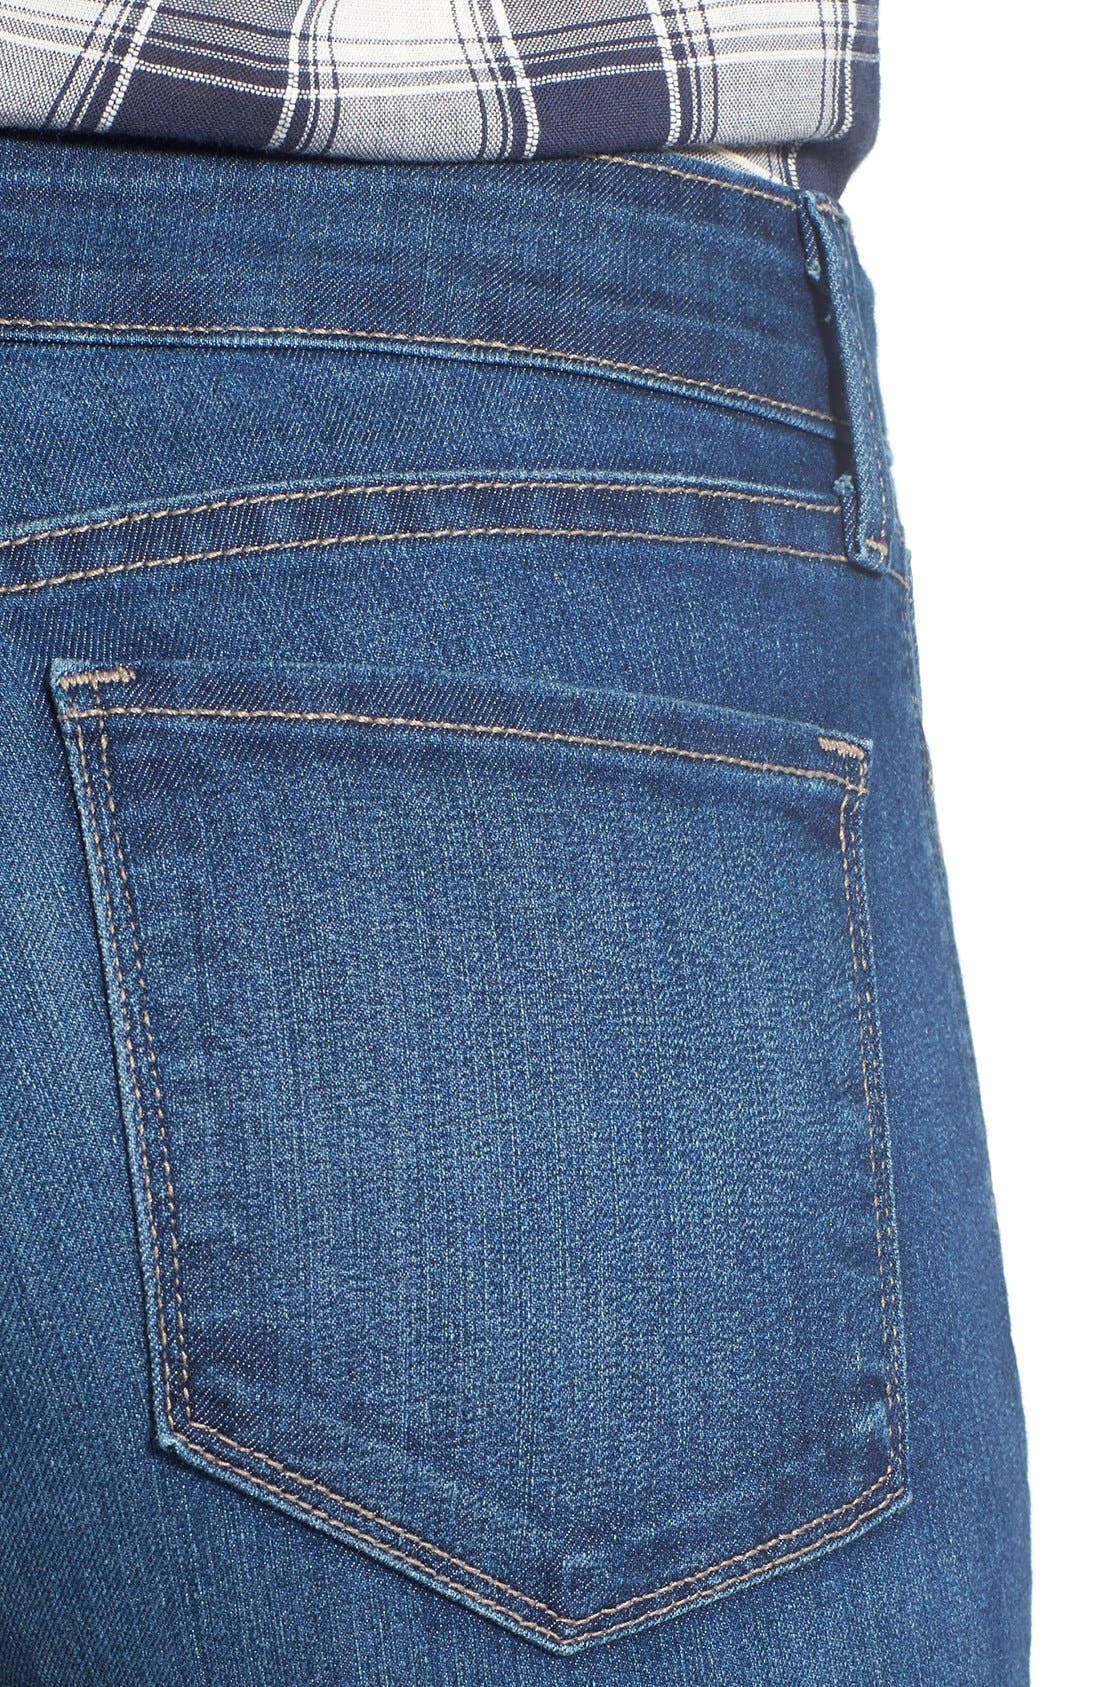 Ami Stretch Skinny Jeans,                             Alternate thumbnail 4, color,                             Cleveland